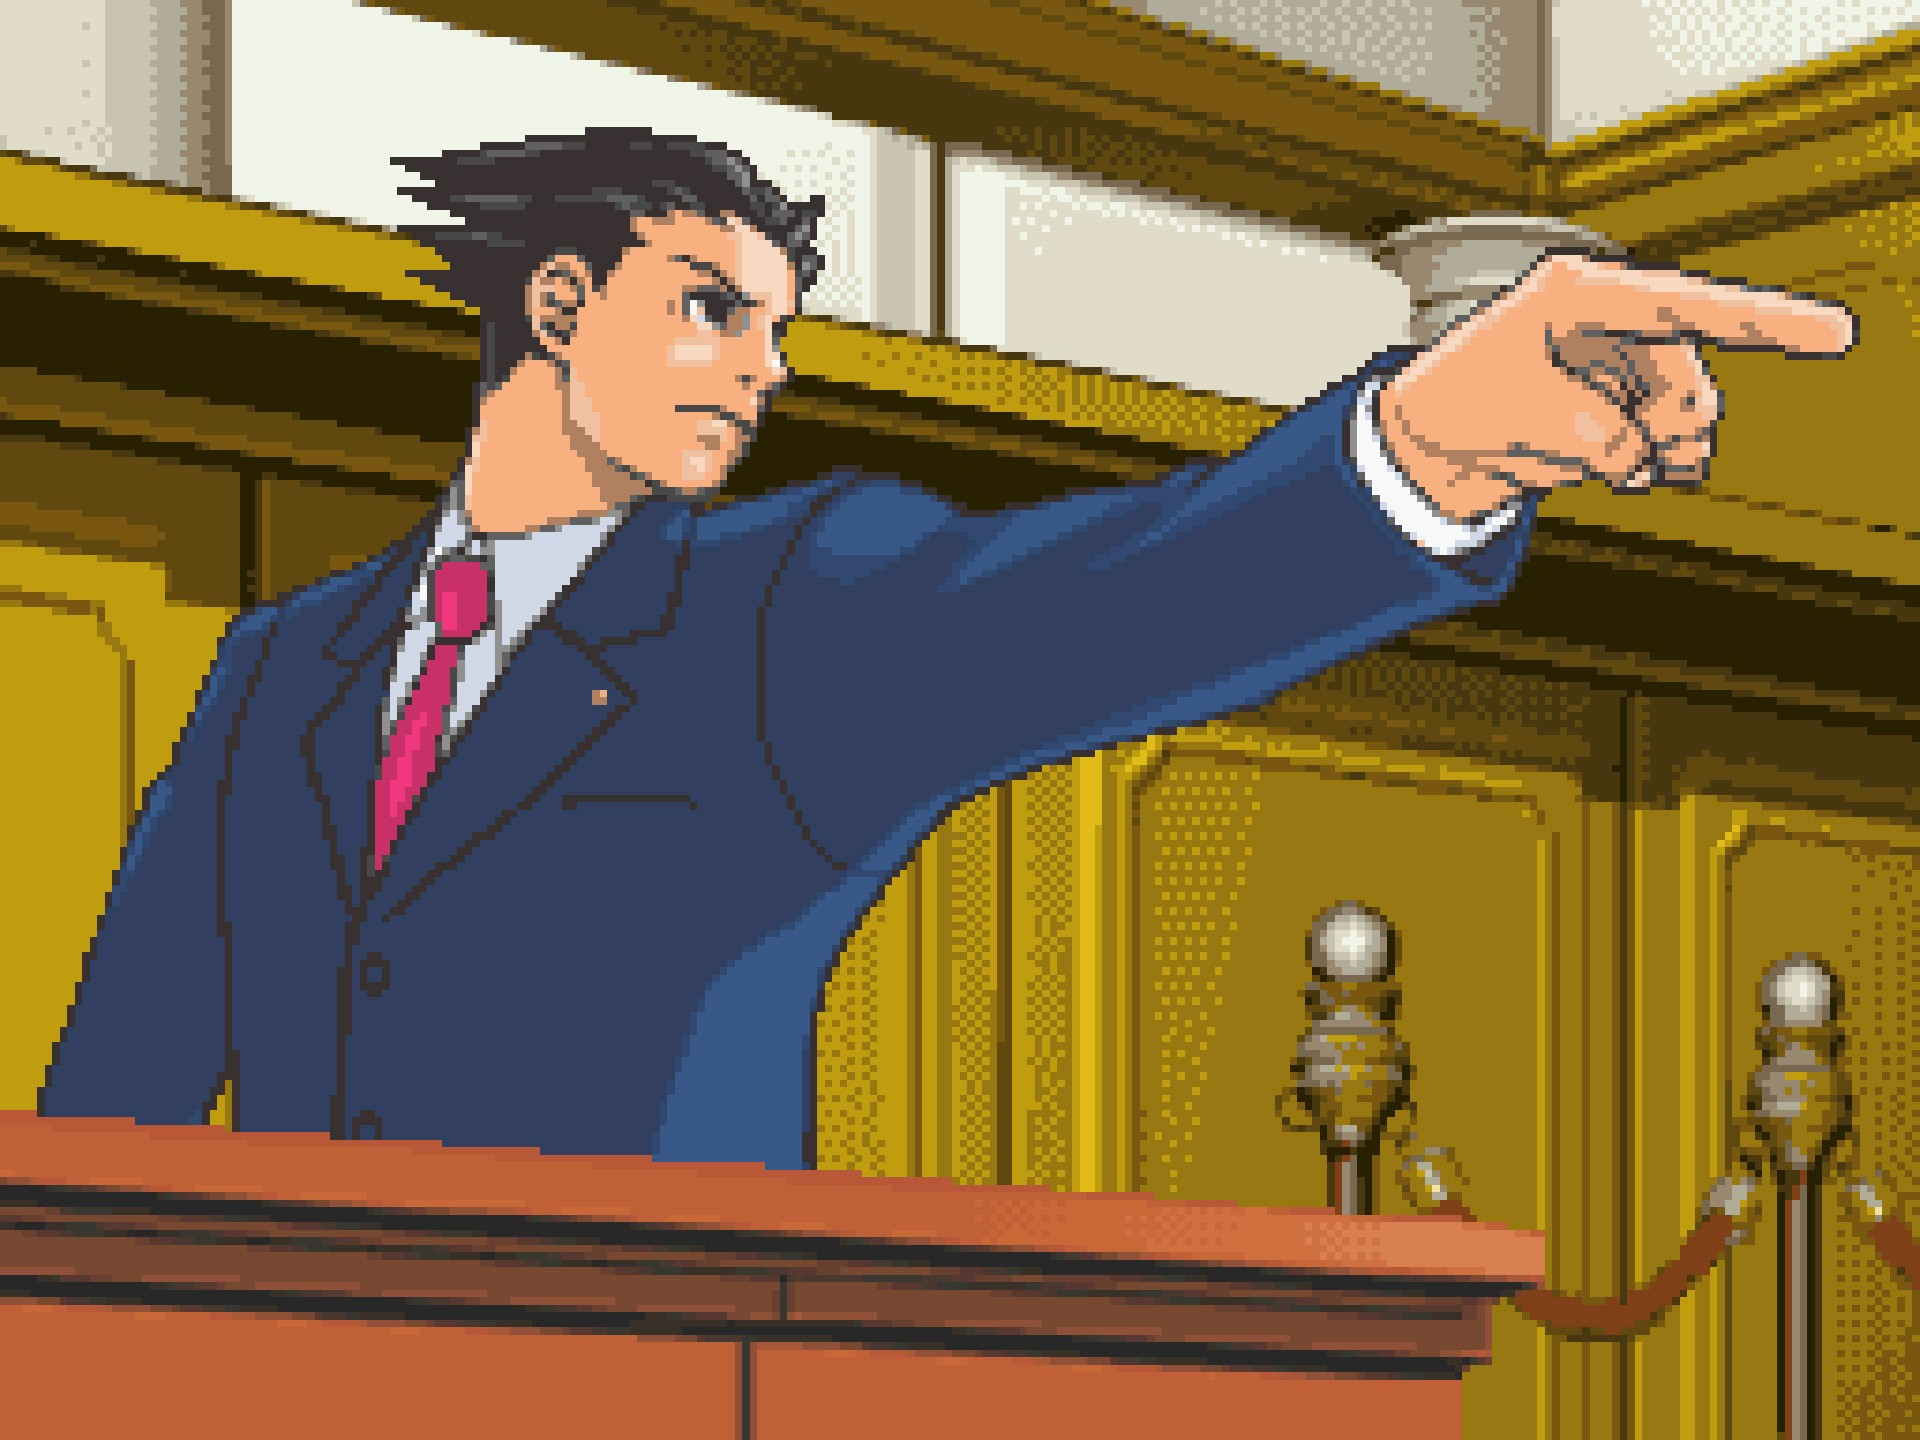 46628090665 42dfdddecf o - Phoenix Wright: Ace Attorney Trilogy erscheint morgen